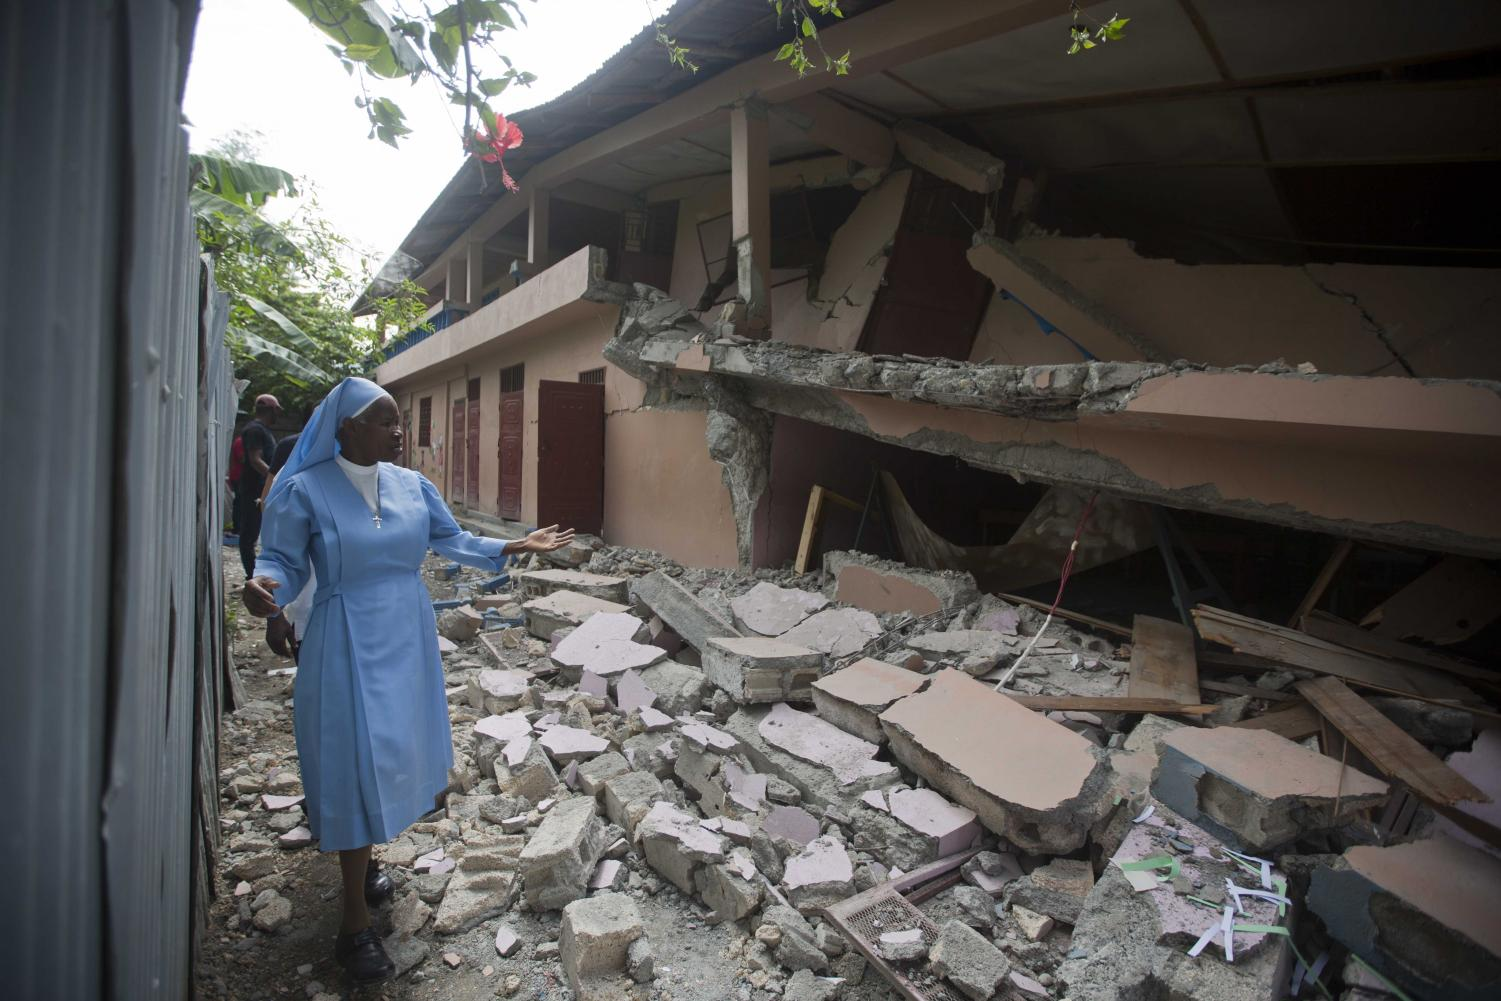 Sr Maryse Alsaint walks alongside a school damaged by a magnitude 5.9 earthquake the night before, in Gros Morne, Haiti, Sunday, Oct. 7, 2018. Emergency teams worked to provide relief in Haiti on Sunday after the quake killed at least 11 people and left dozens injured.